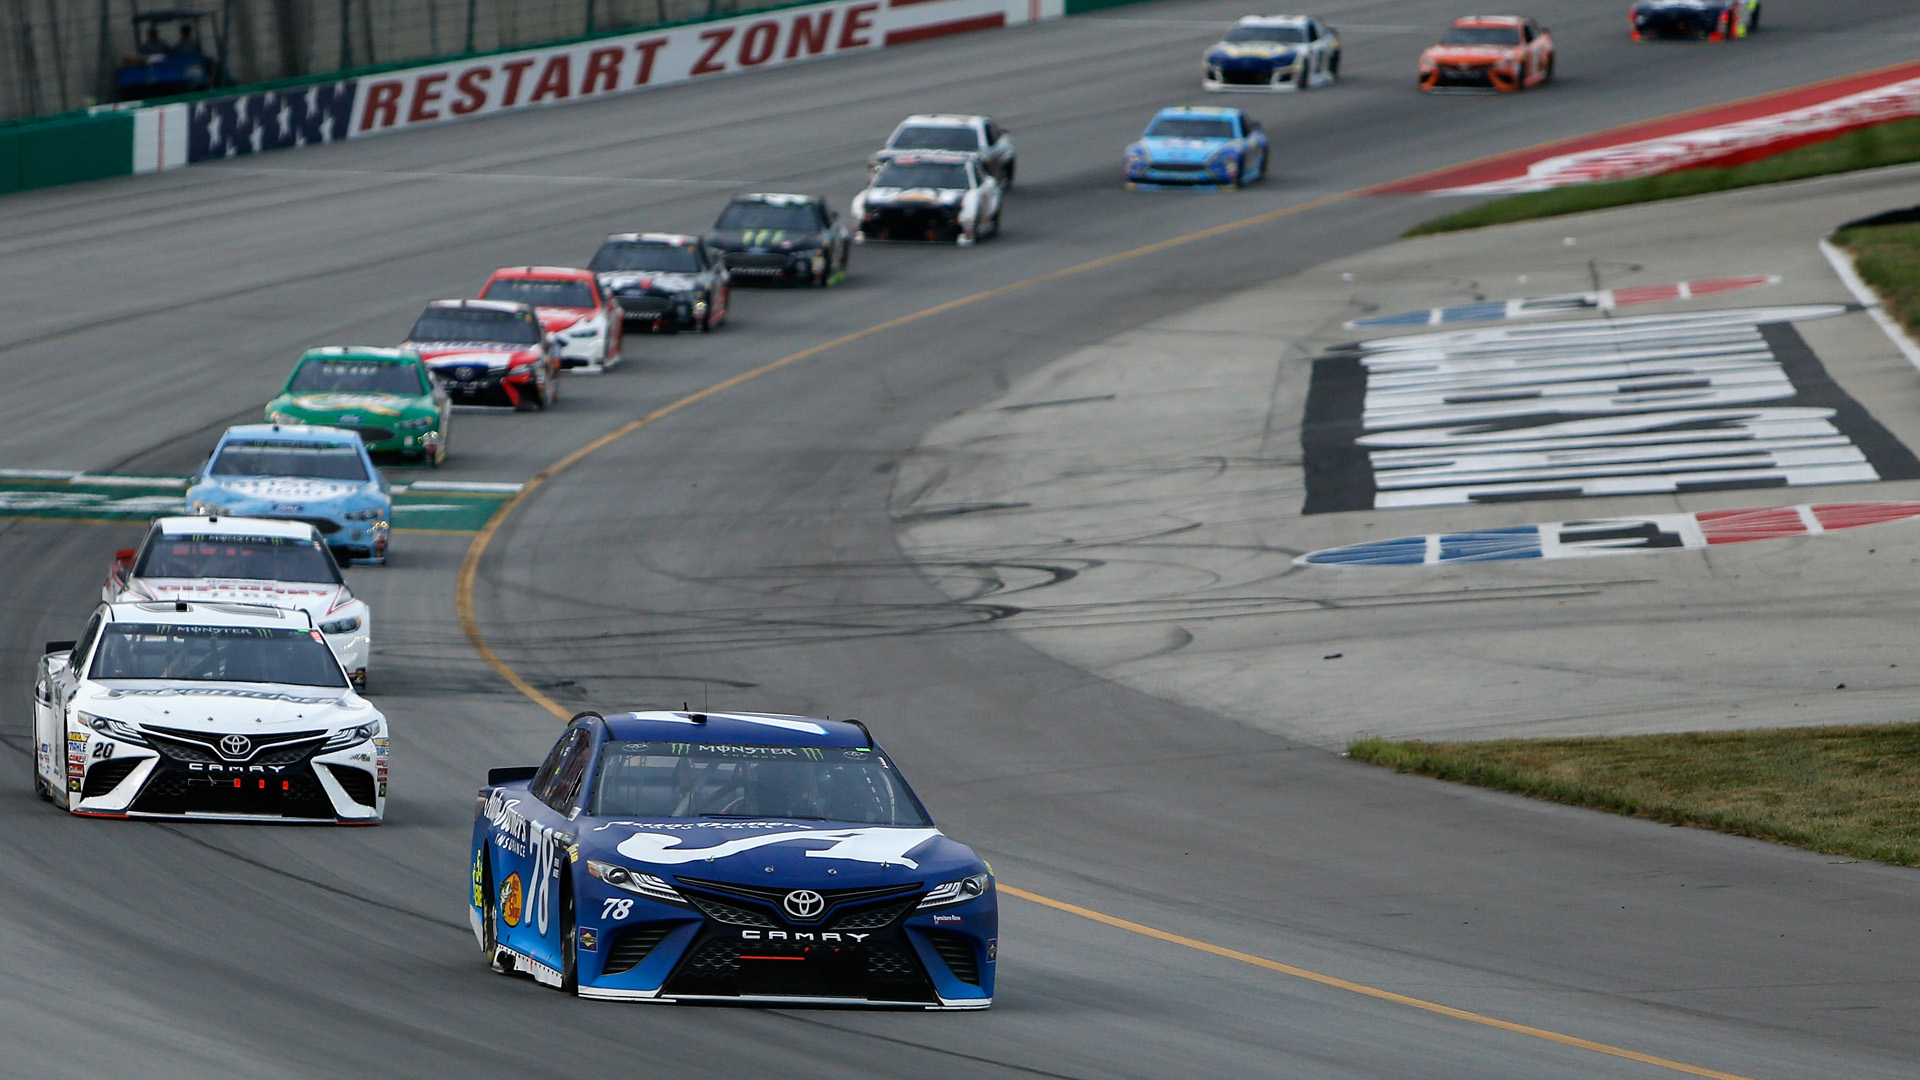 NASCAR at Kentucky: Odds, prediction, sleepers, drivers to watch for Quaker State 400